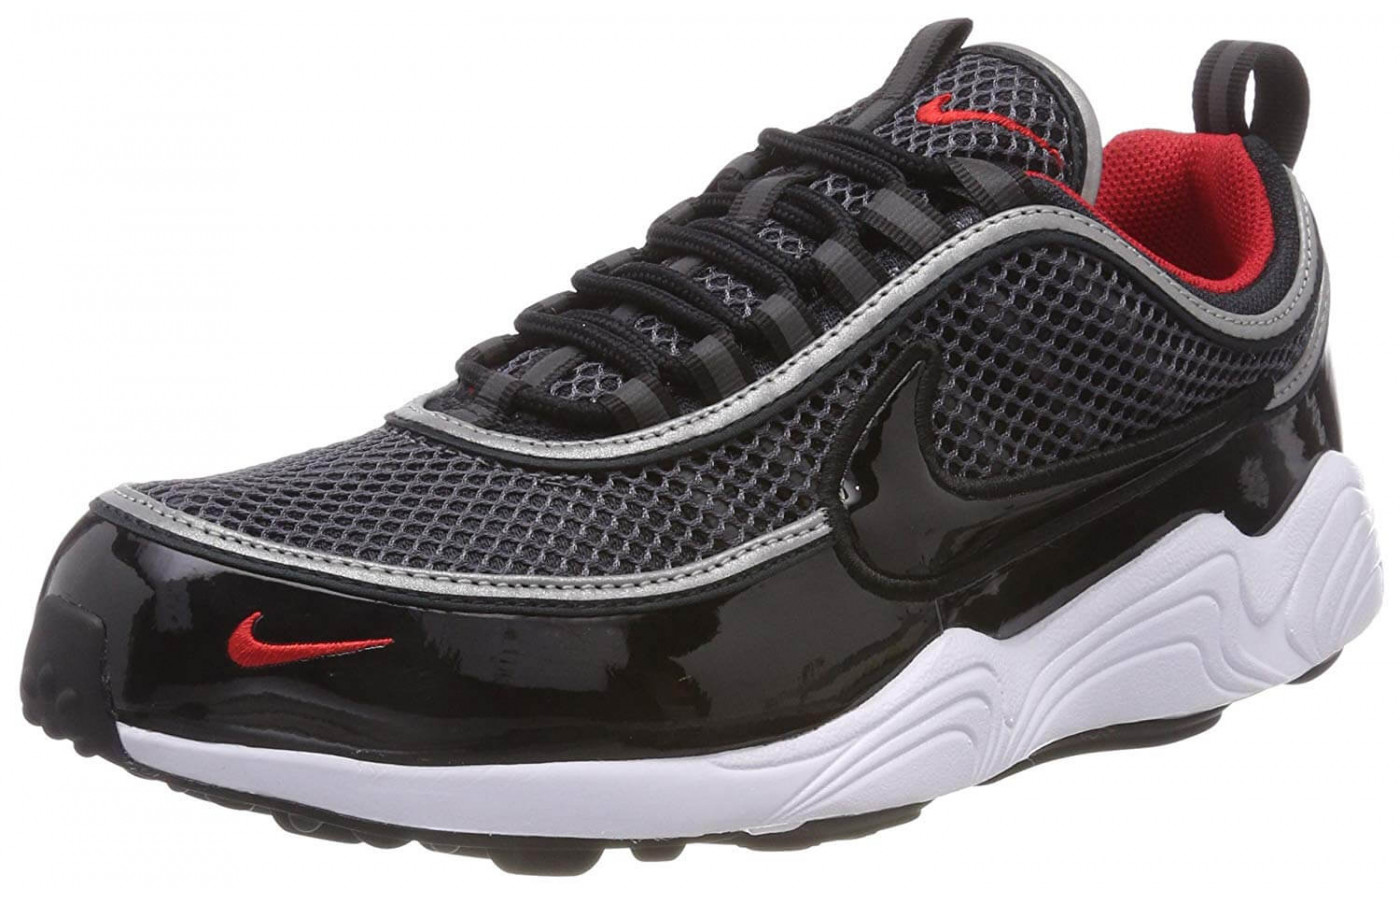 bf2ea93bd2c3 Nike Air Zoom Spiridon  16 - To Buy or Not in May 2019